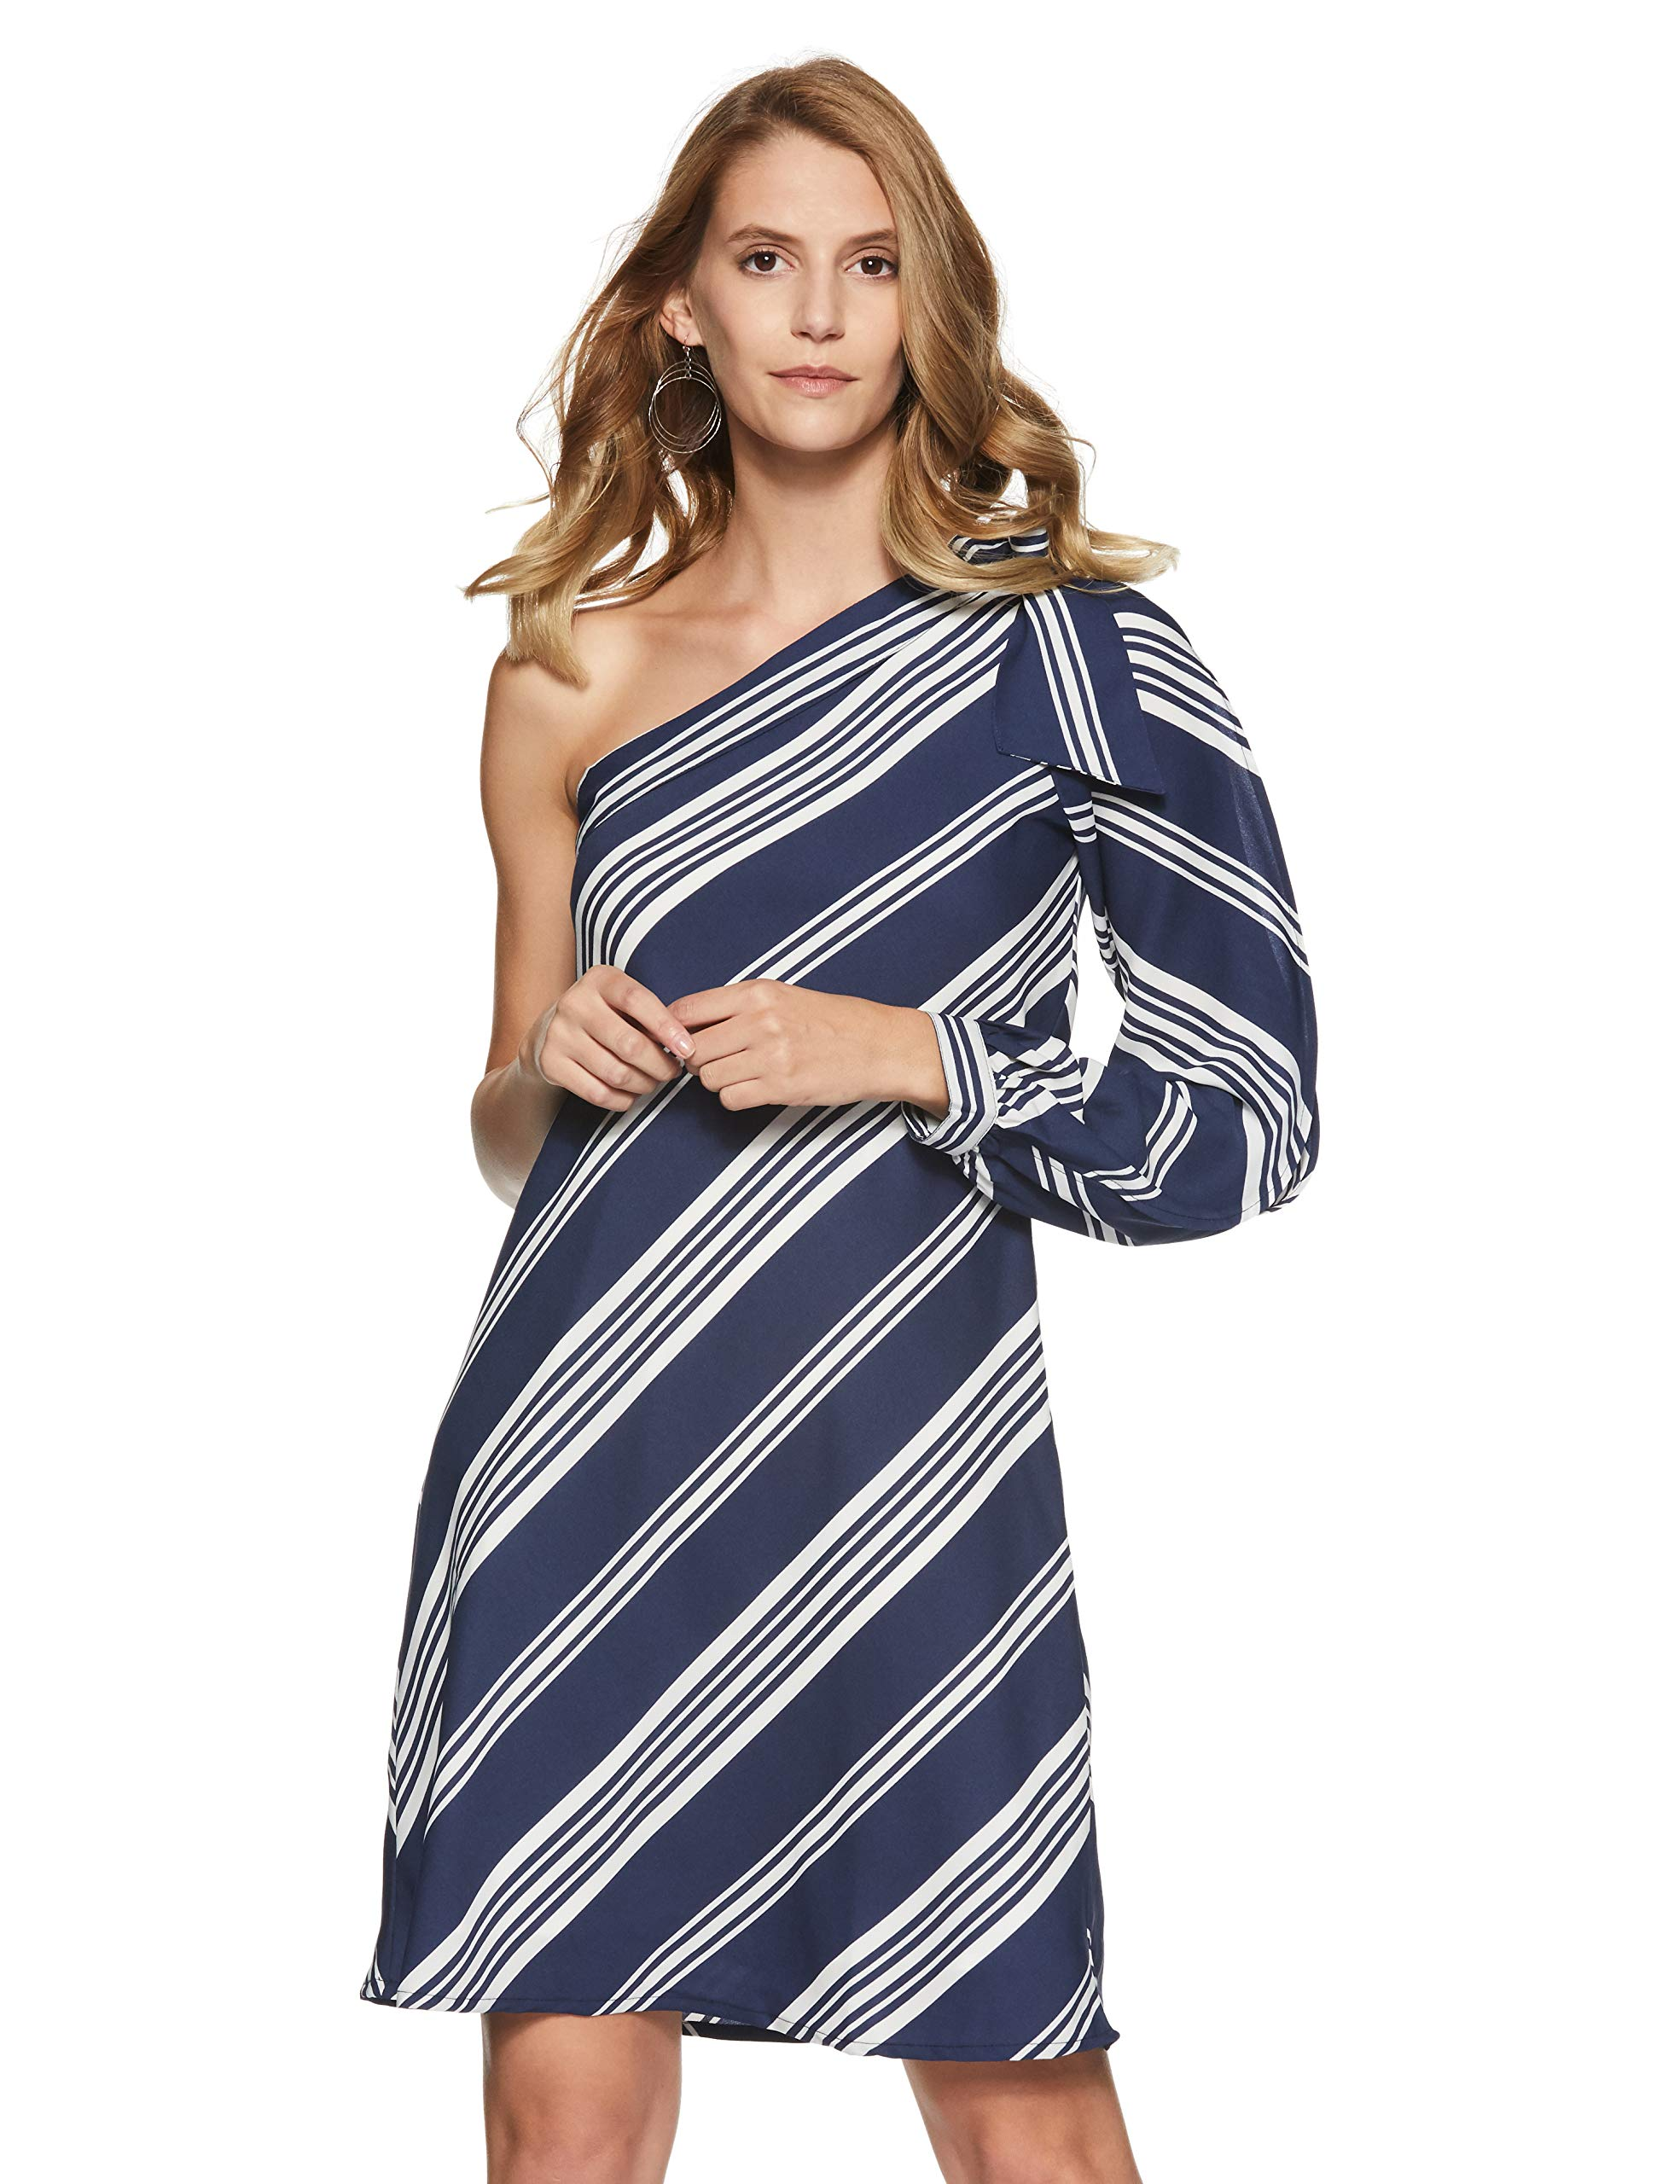 Stalk Buy Love Women's Georgette Striped Jenia One Shoulder Knotted Dress